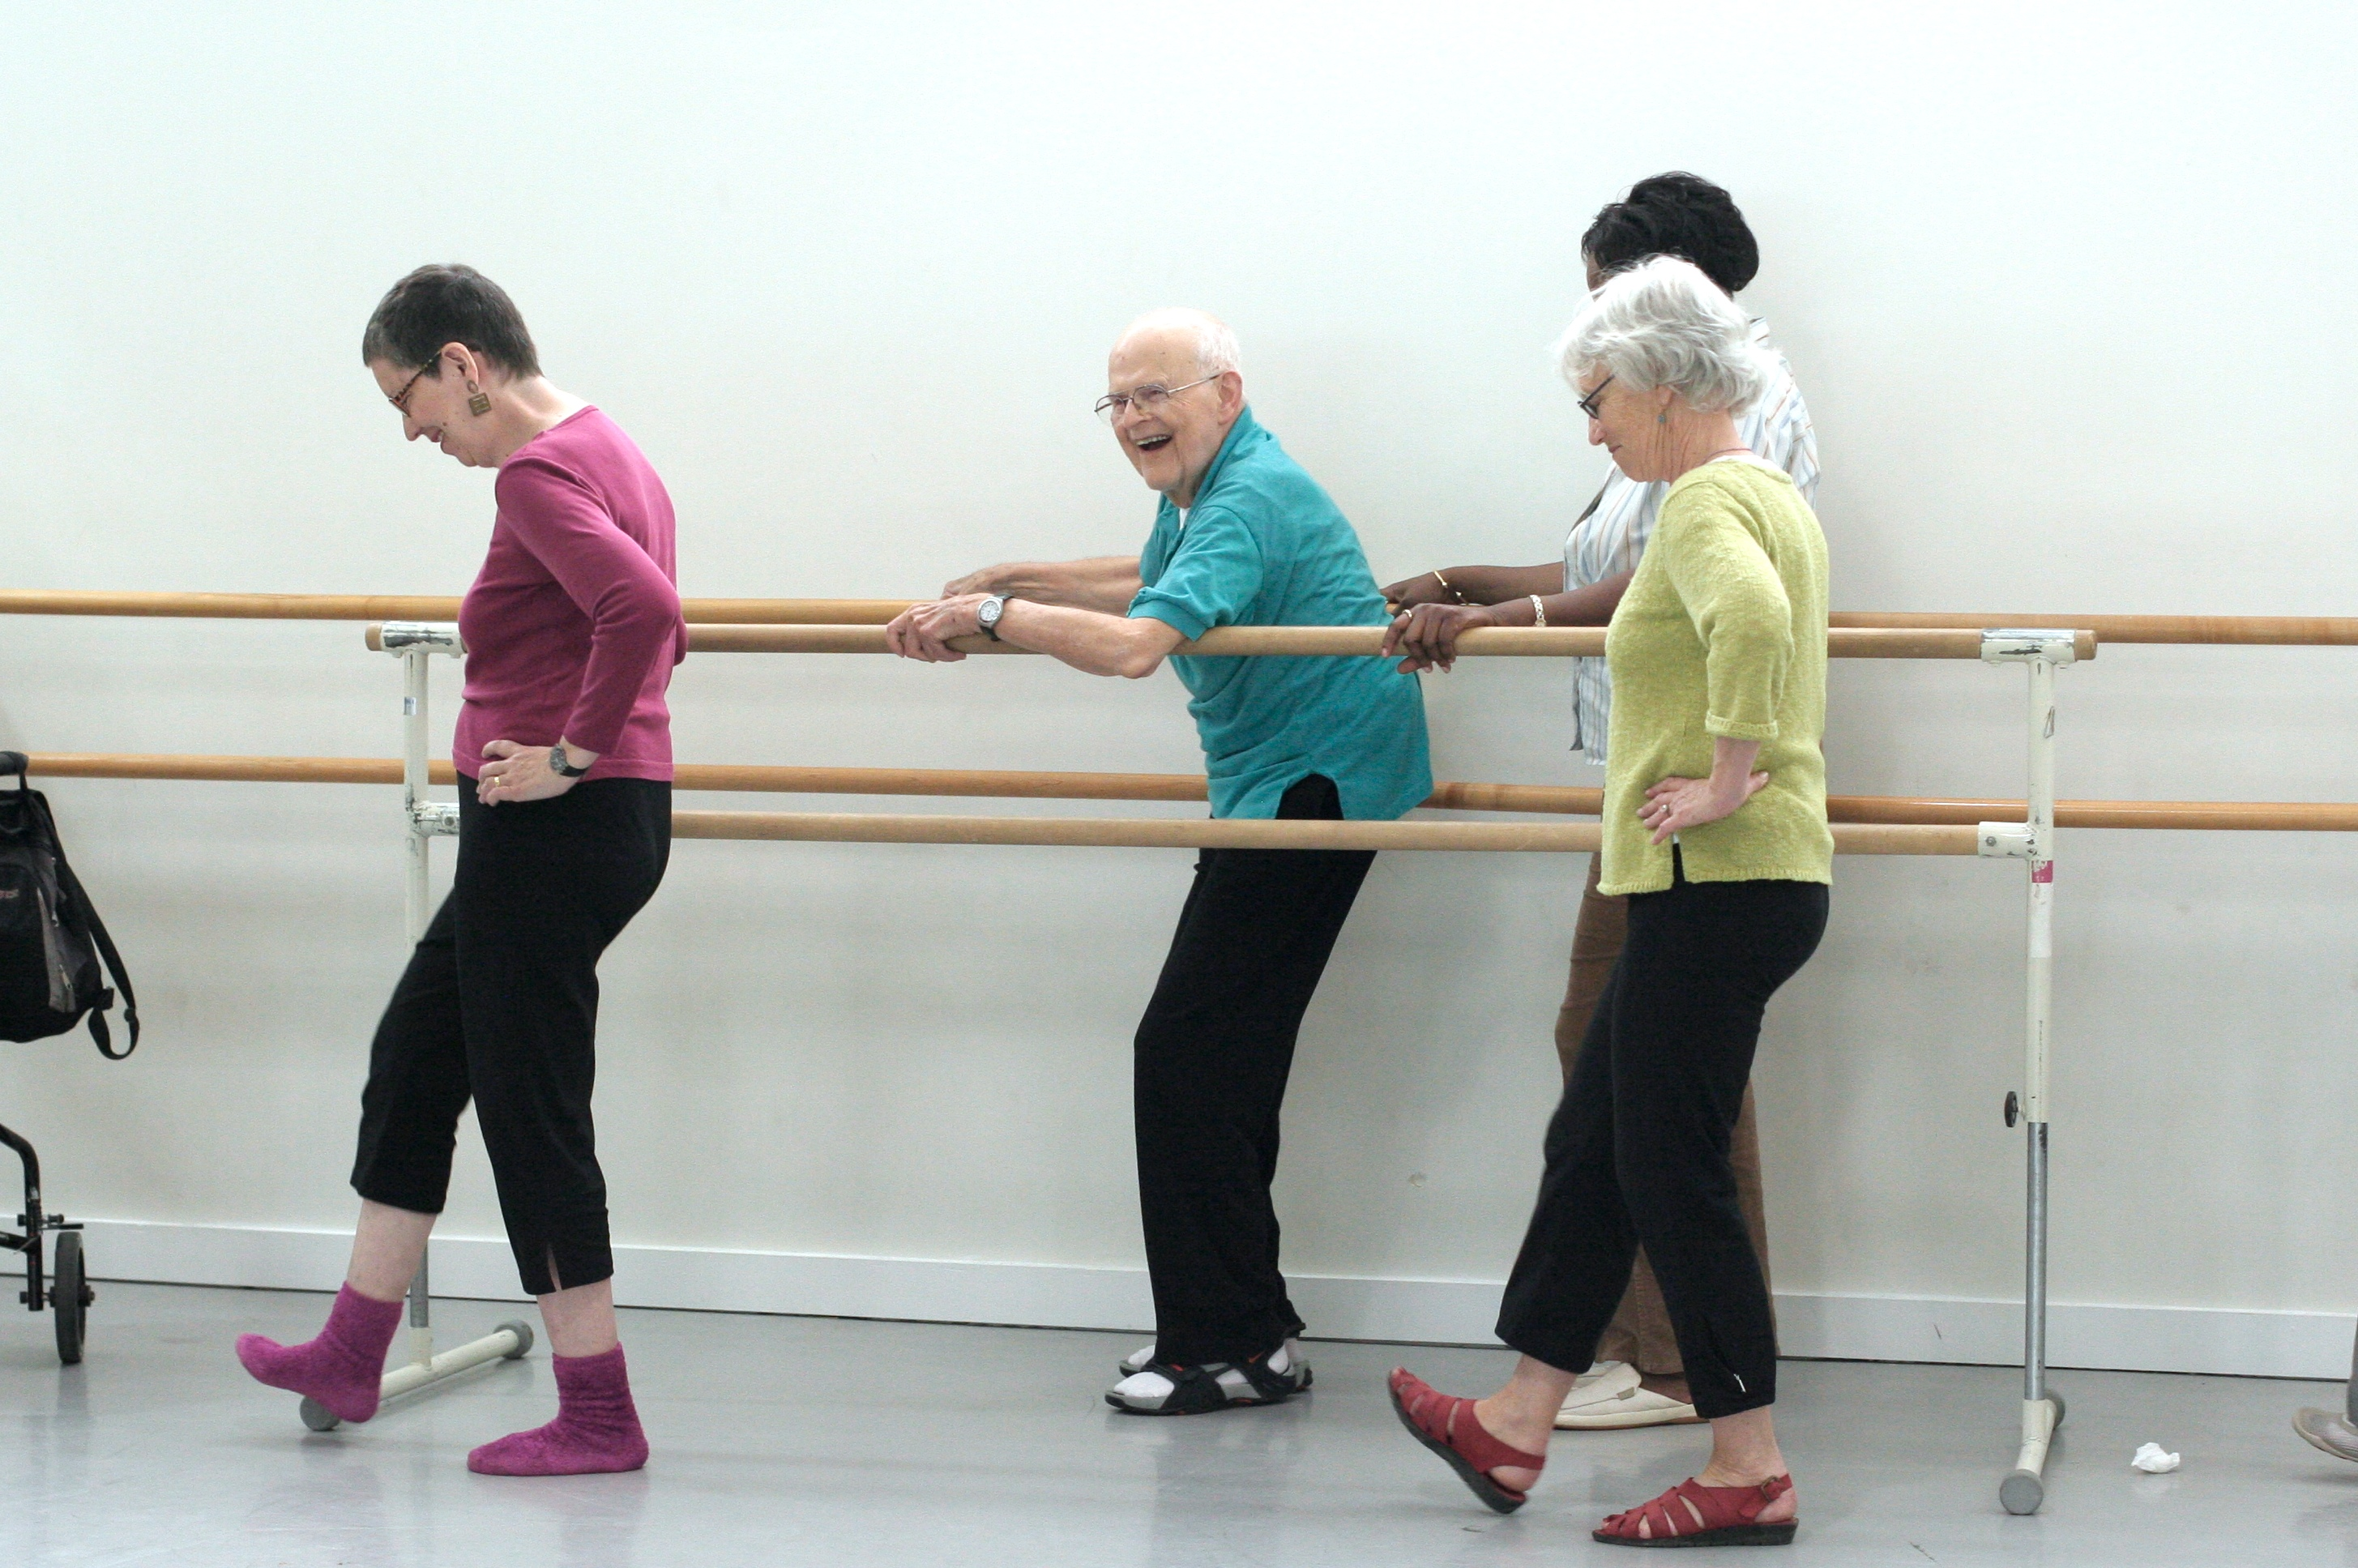 Tap_at_the_Barre._Dance_for_PD_at_Mark_Morris_Dance_Center._Photo_by_Amber_Star_Merkens